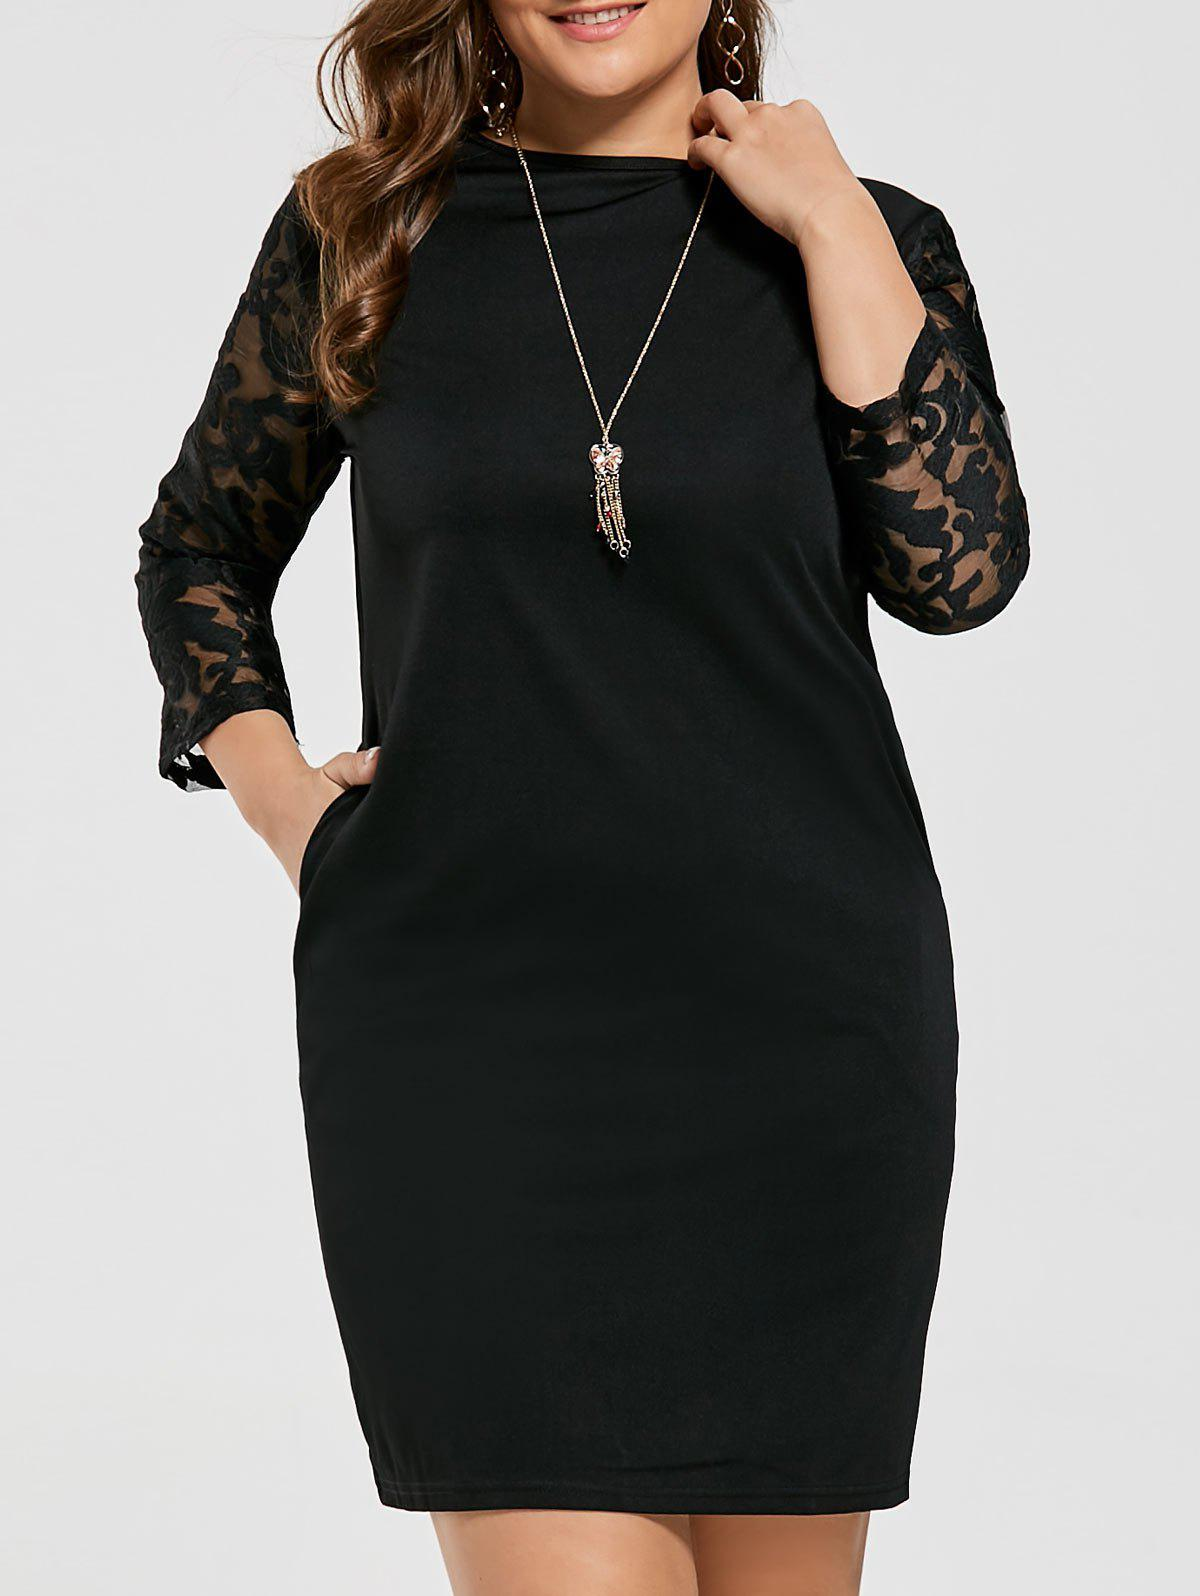 Mesh Sleeve Plus Size Fitted Dress with Pocket plus size tank dress with long mesh sheer cardigan